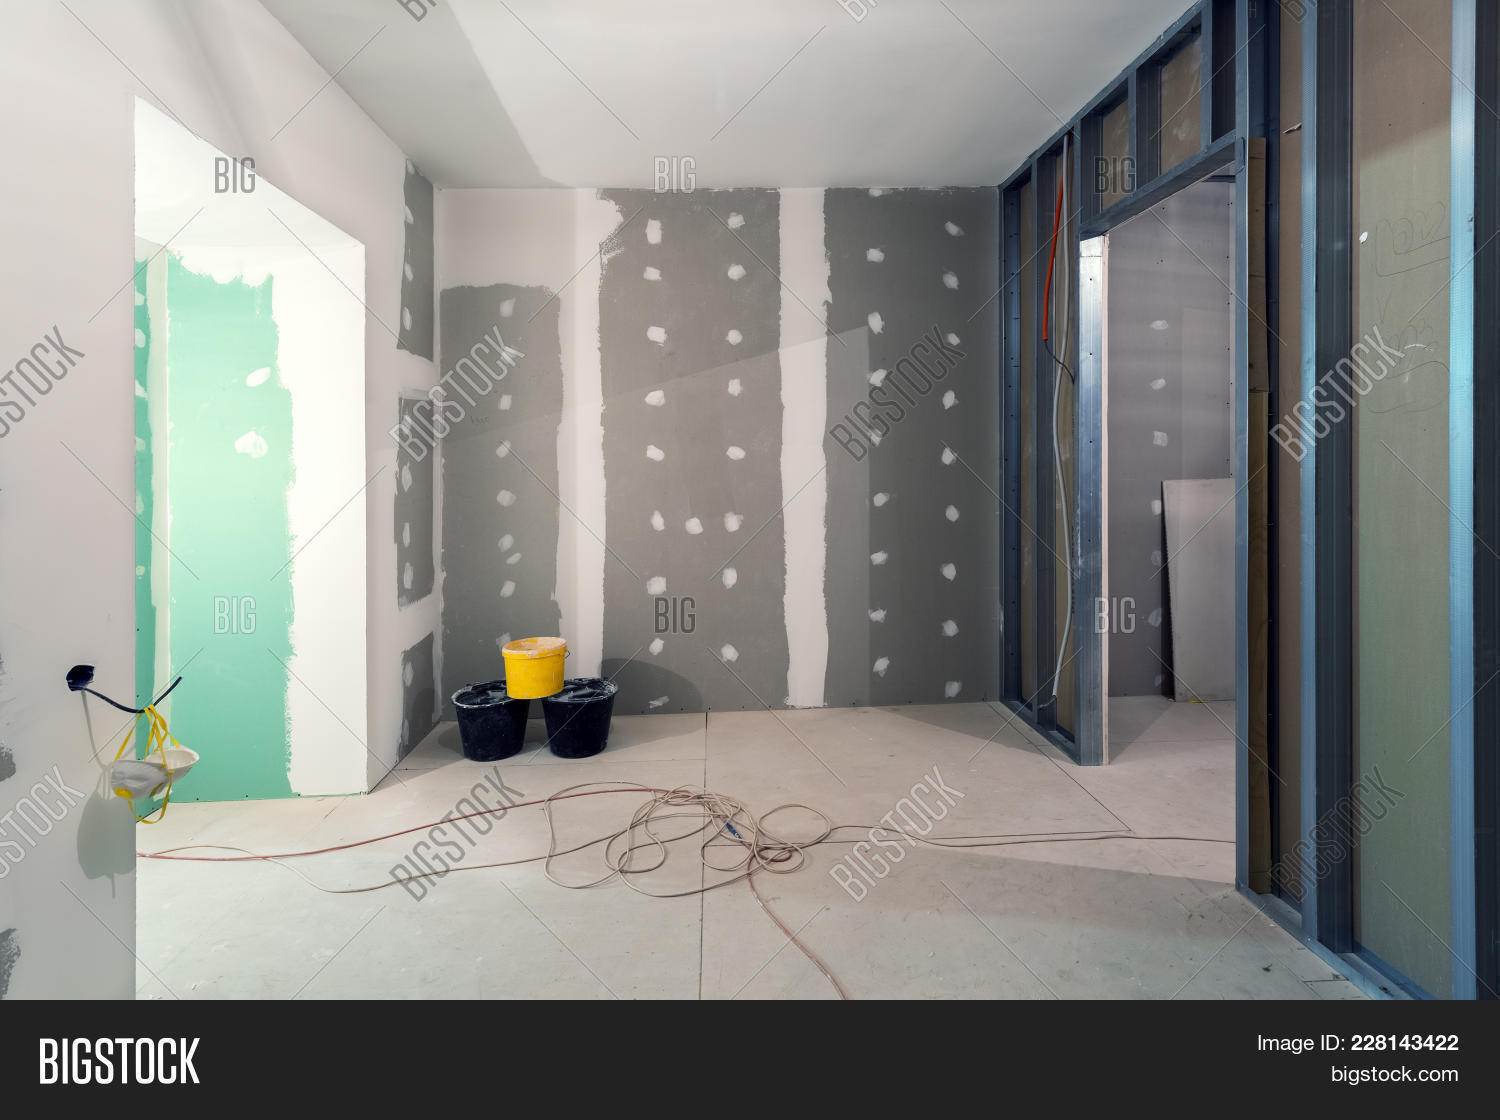 Working Process Of Installing Metal Frames And Plasterboard (drywall) For Gypsum Walls And Materials